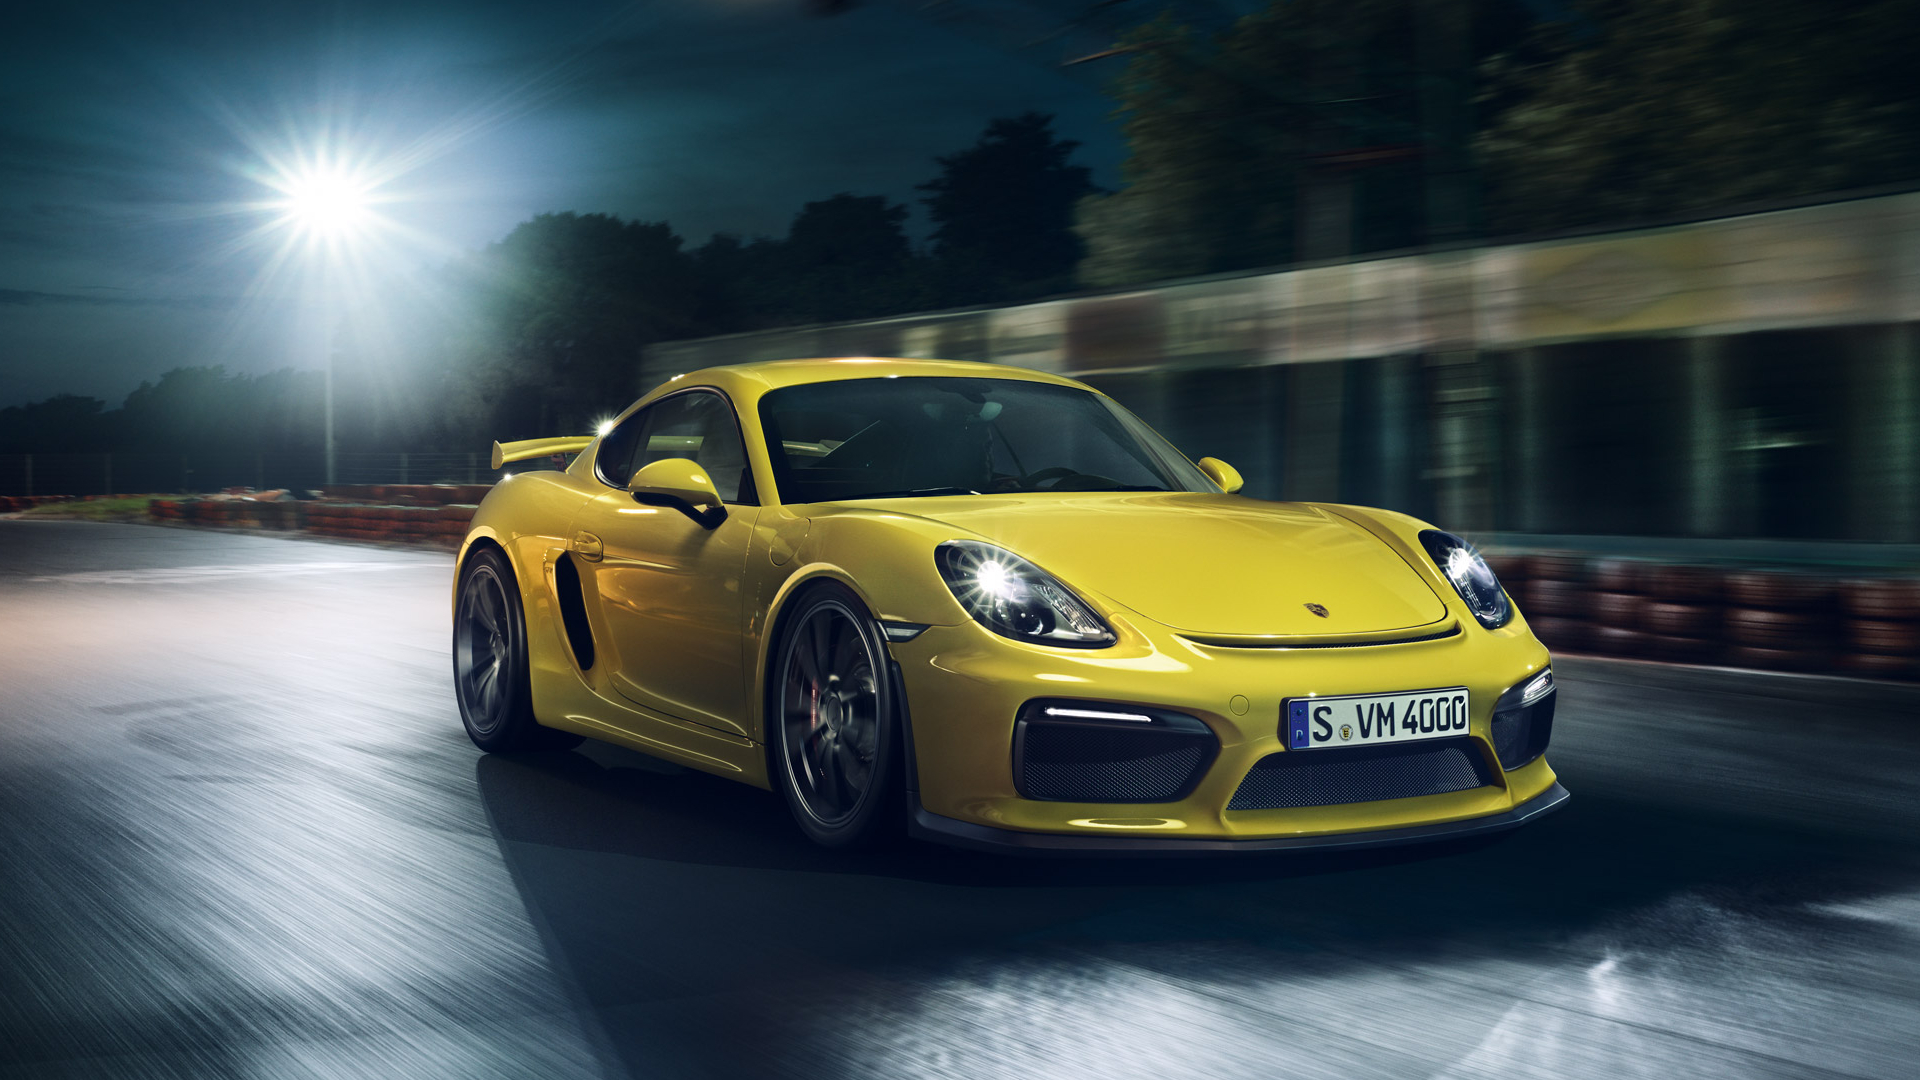 Cayman Gt4 Wall Paper: Porsche Cayman GT4 Full HD Wallpaper And Background Image